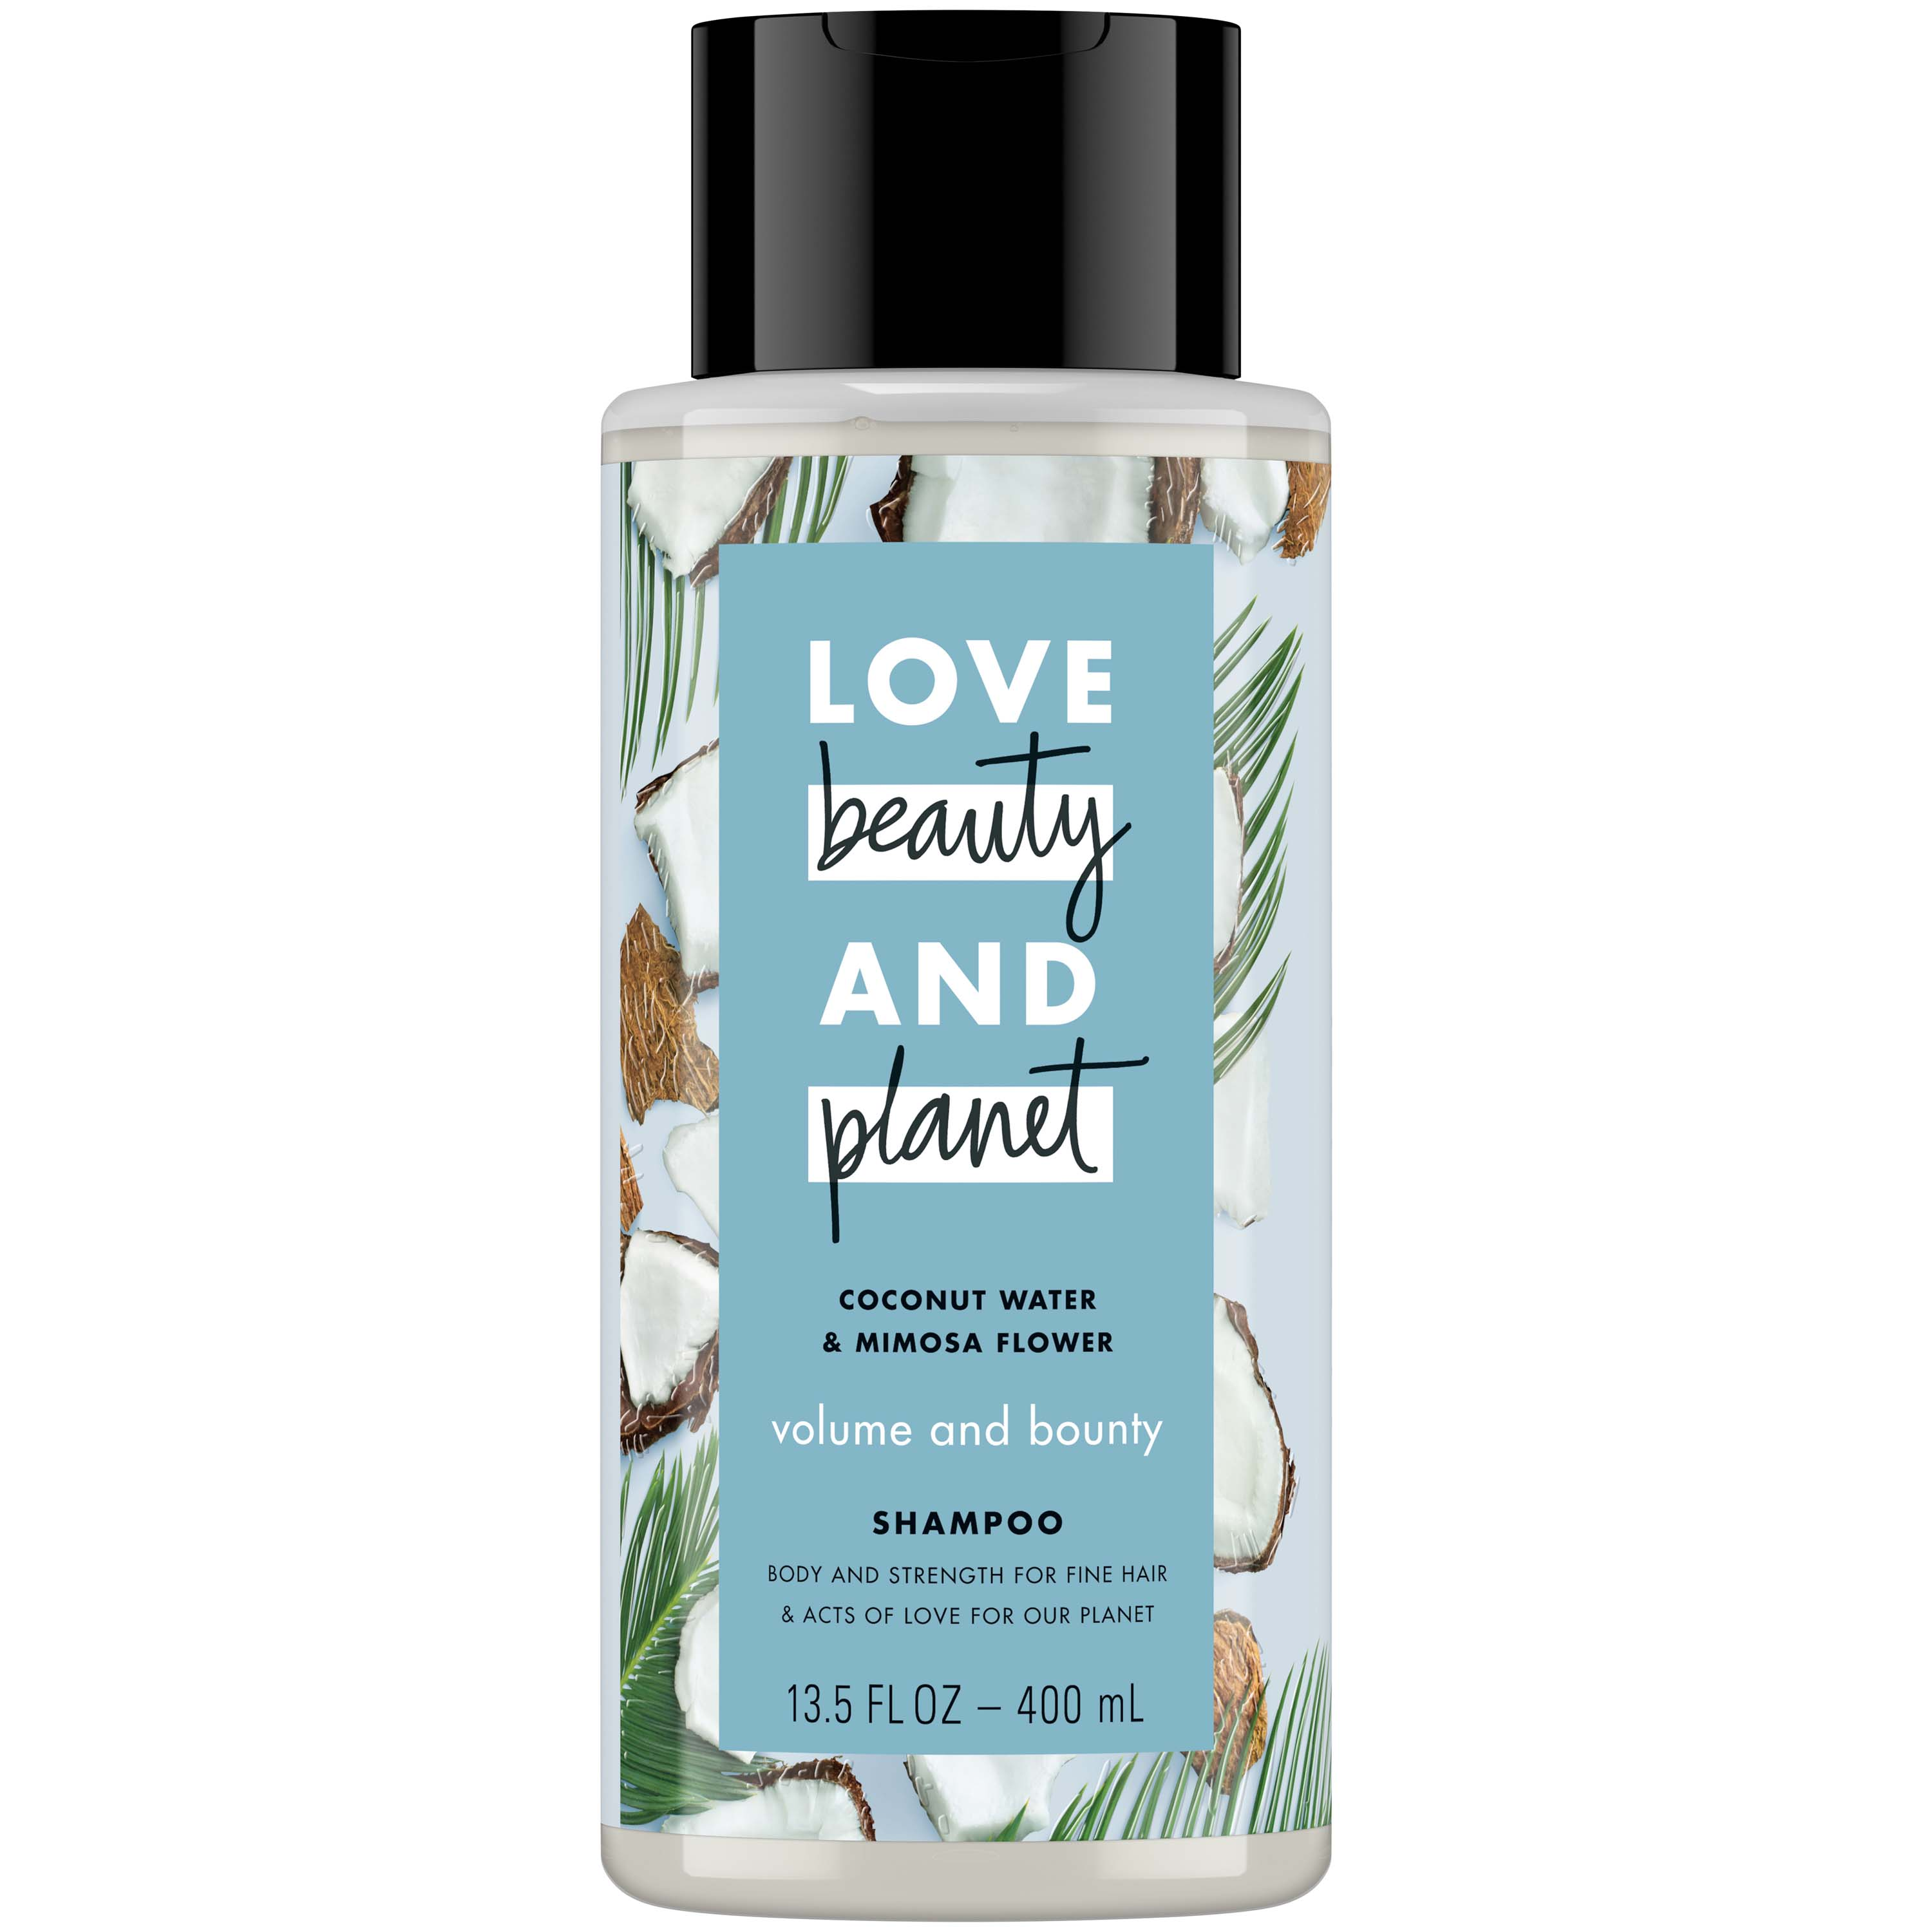 Love Beauty And Planet Volume and Bounty Thickening Shampoo for Thinning Hair, Coconut Water & Mimosa Flower 13.5 oz